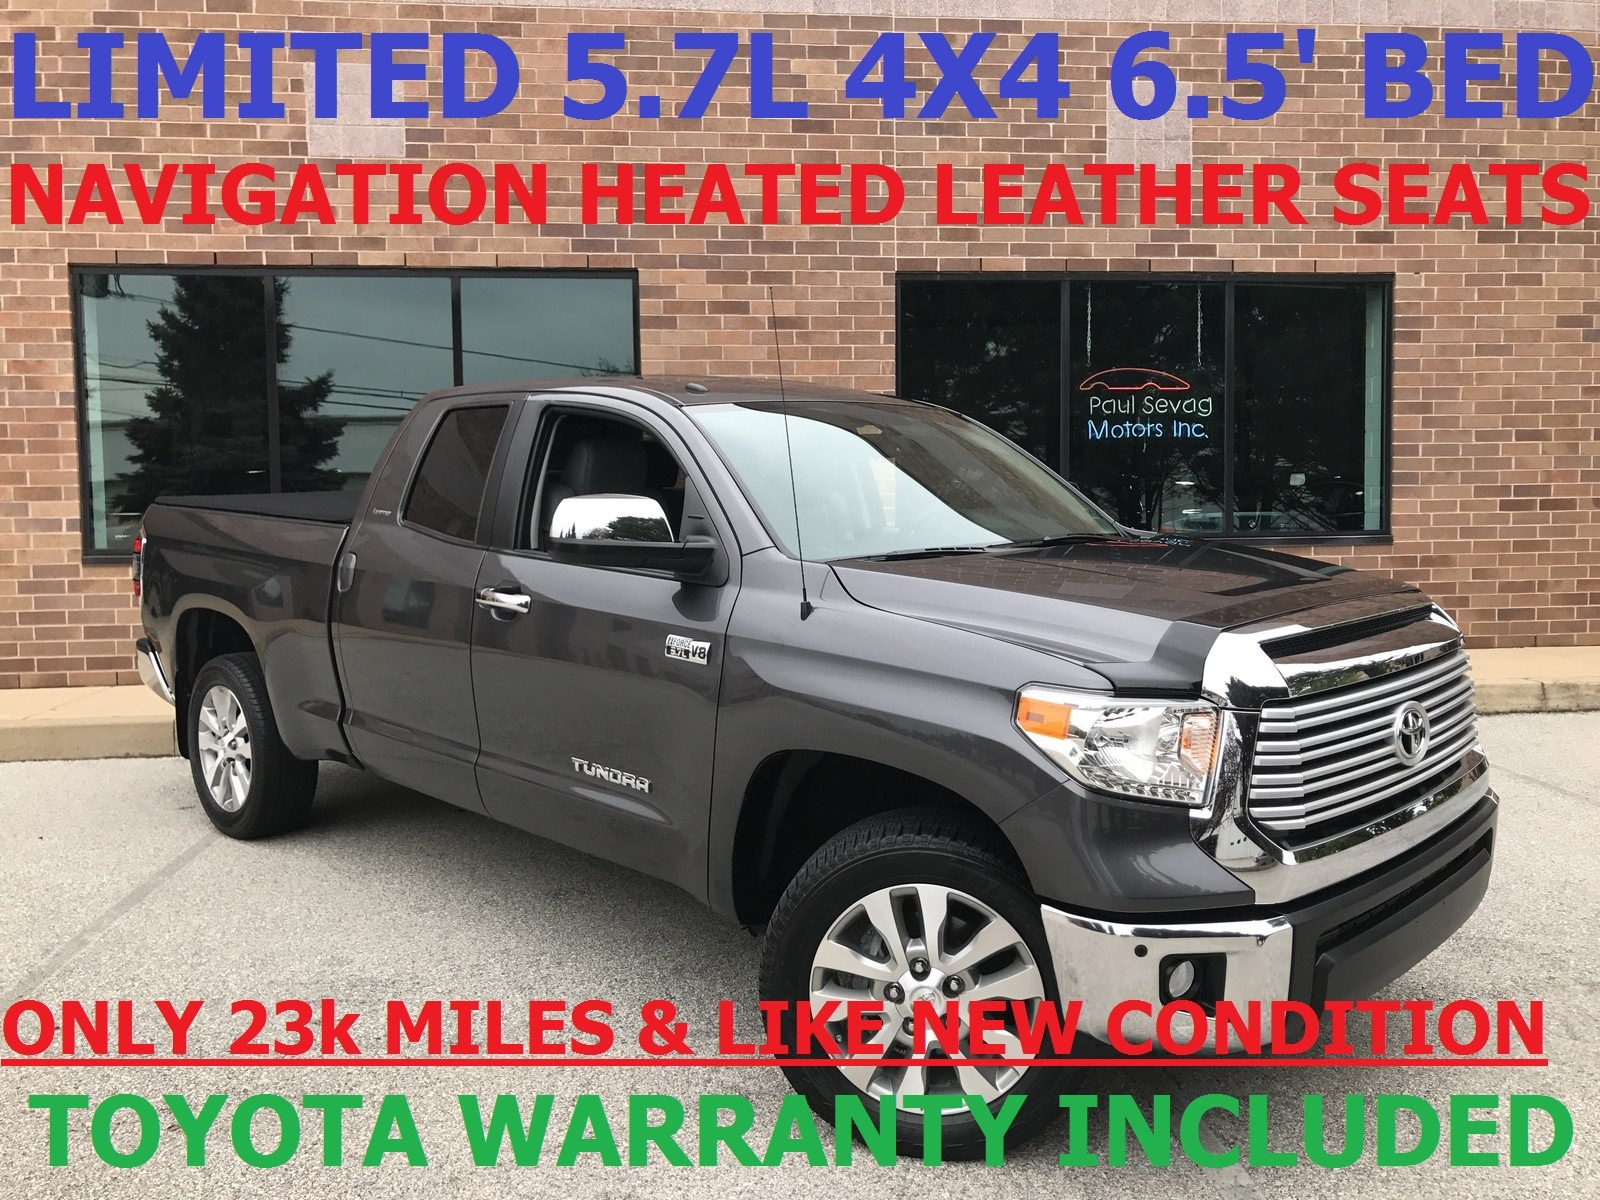 2014 Toyota Tundra Limited Double Cab 4x4 6.5u0027 Bed/Navigation/Tow Pkg/